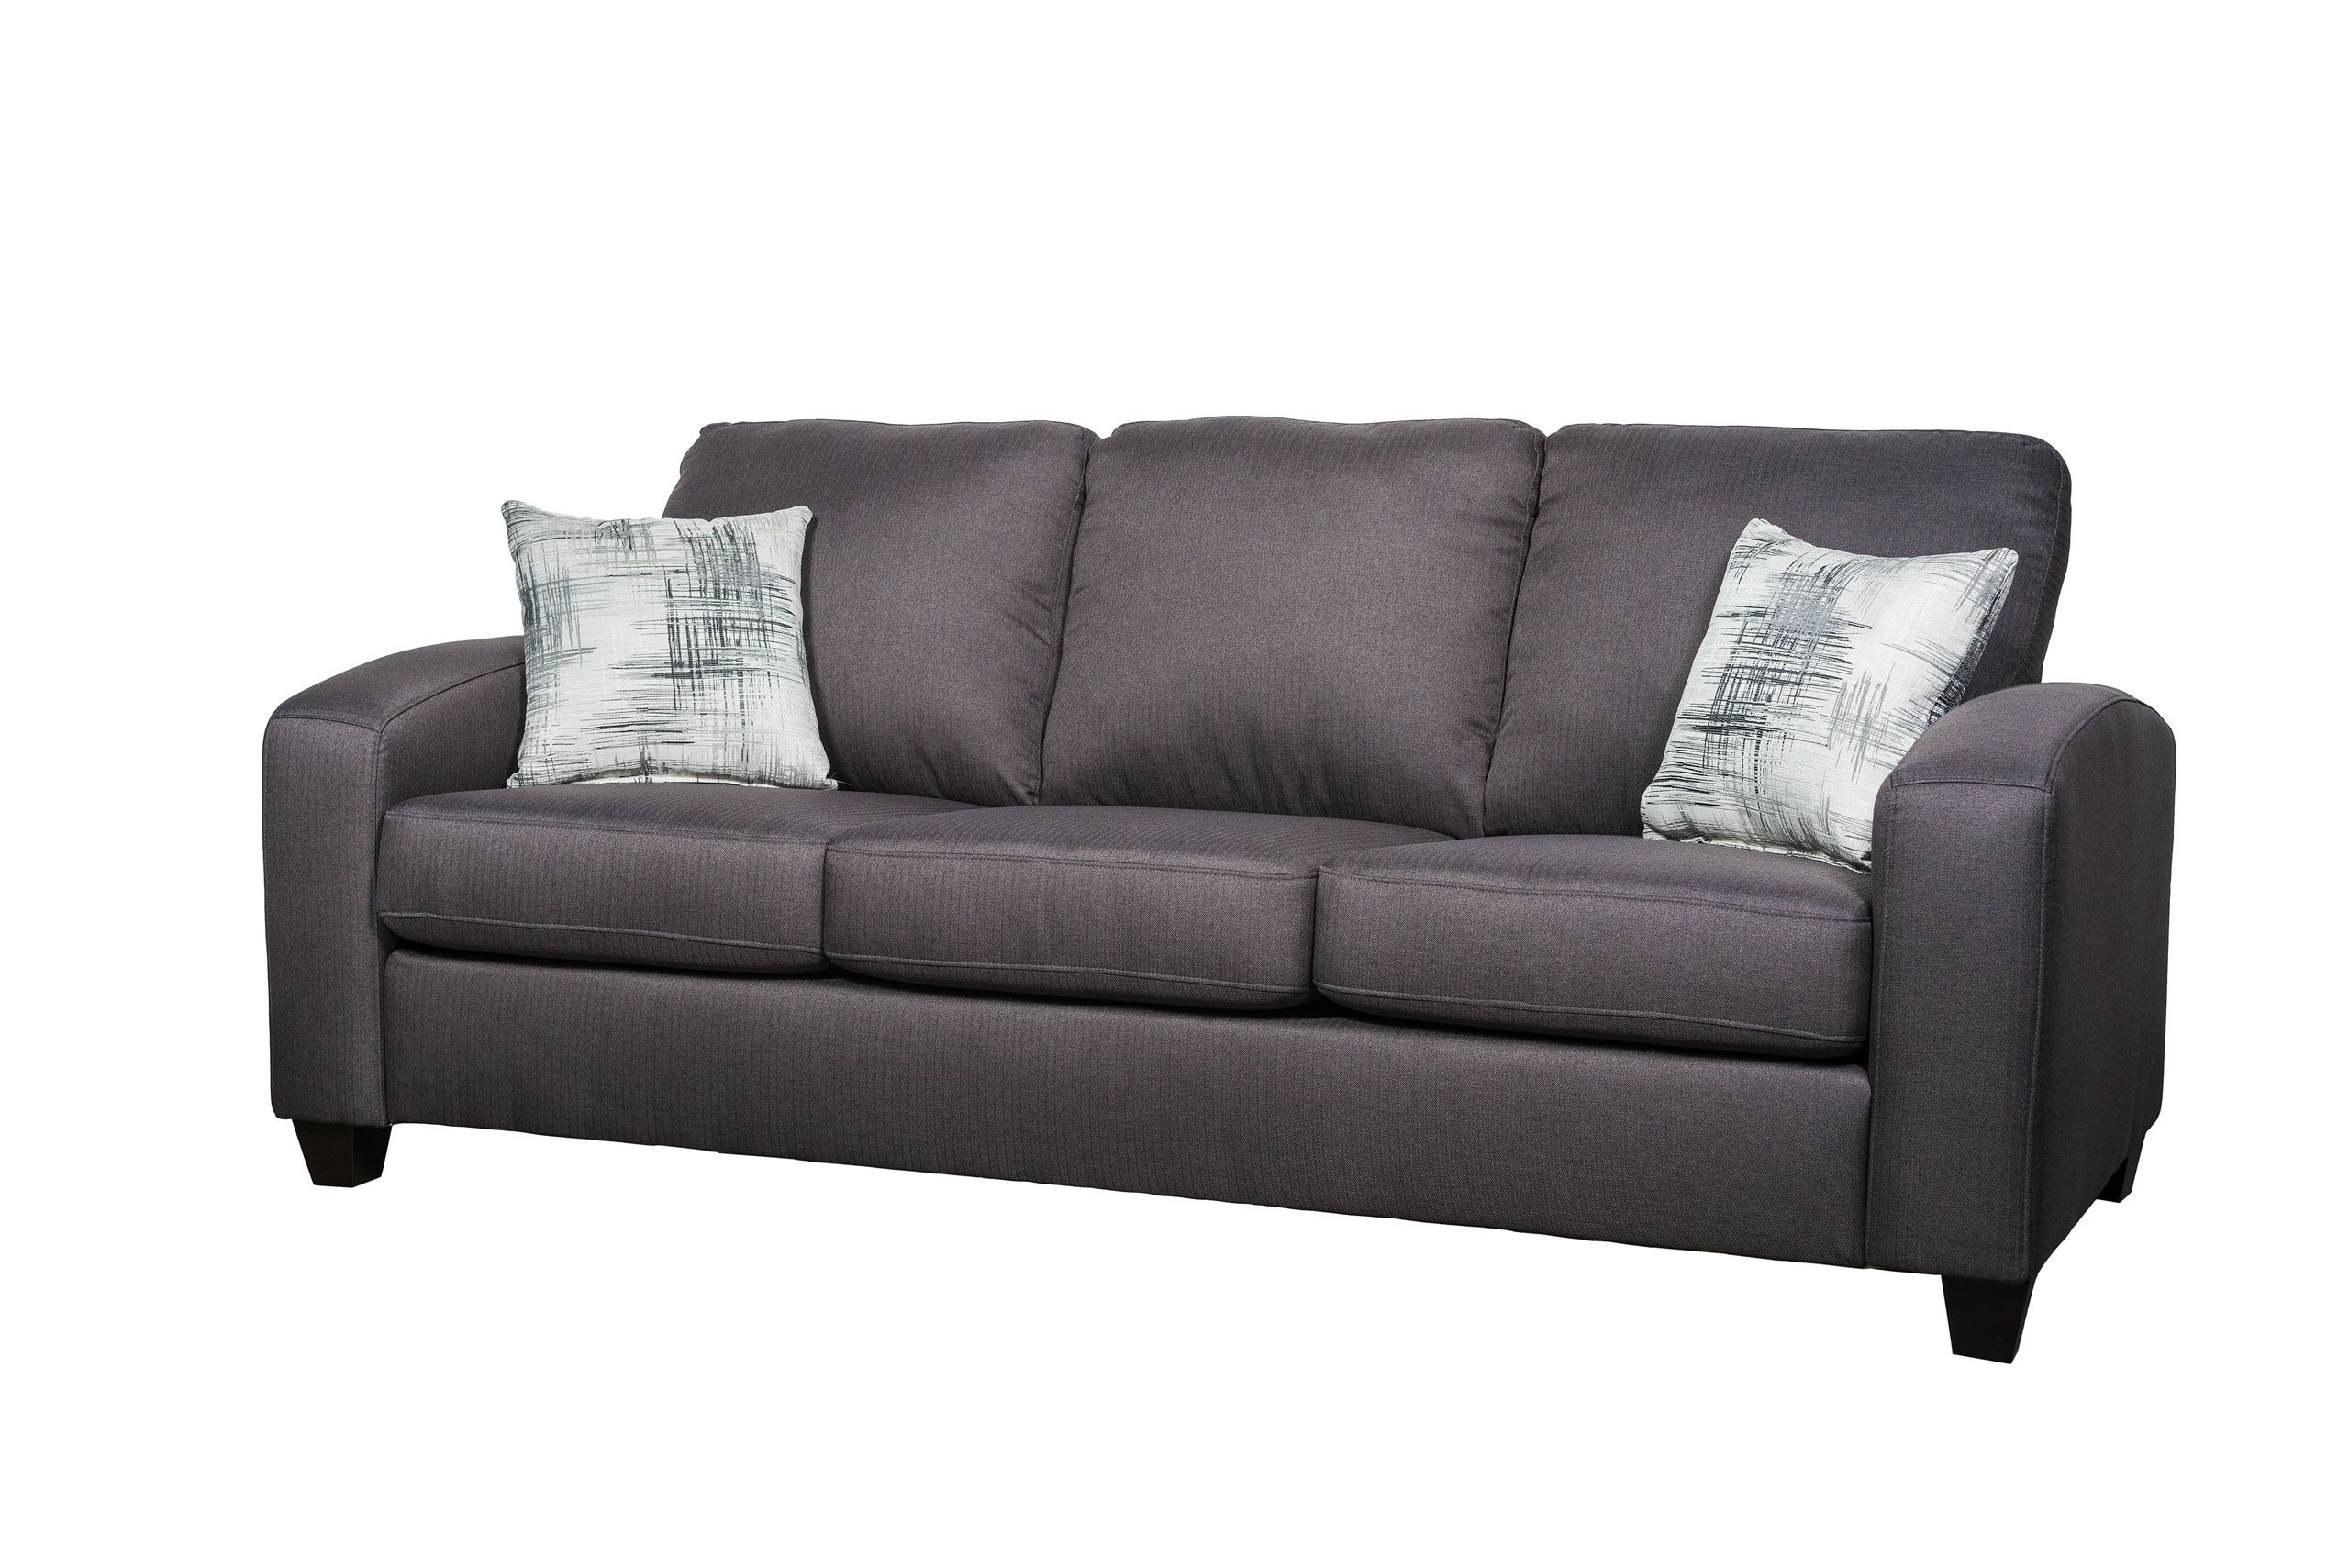 New Arrival Canadian Made Dawson Sofa Only 1099 Price Includes